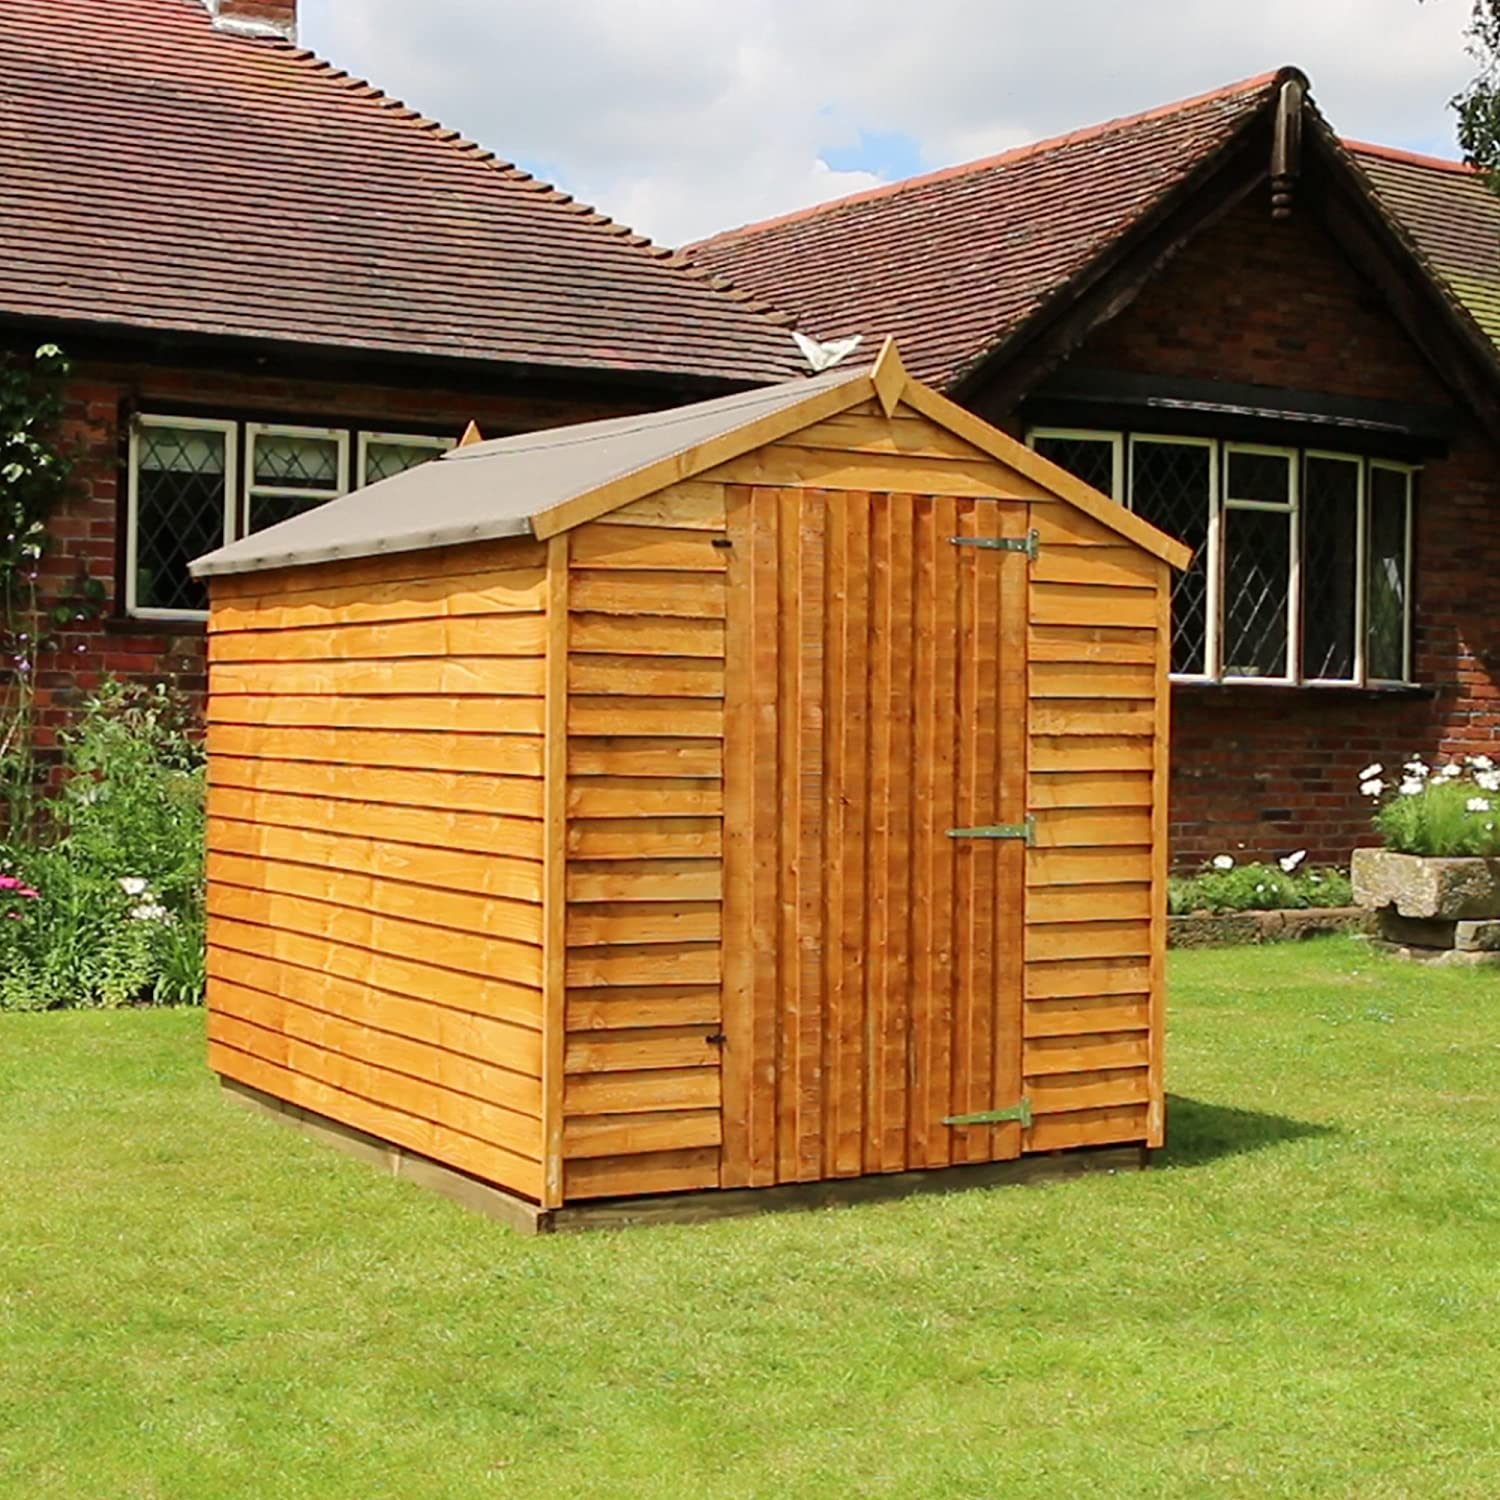 sheds t g outdoor itm double offset shiplap shed pent storage wooden tongue garden and doors groove roof